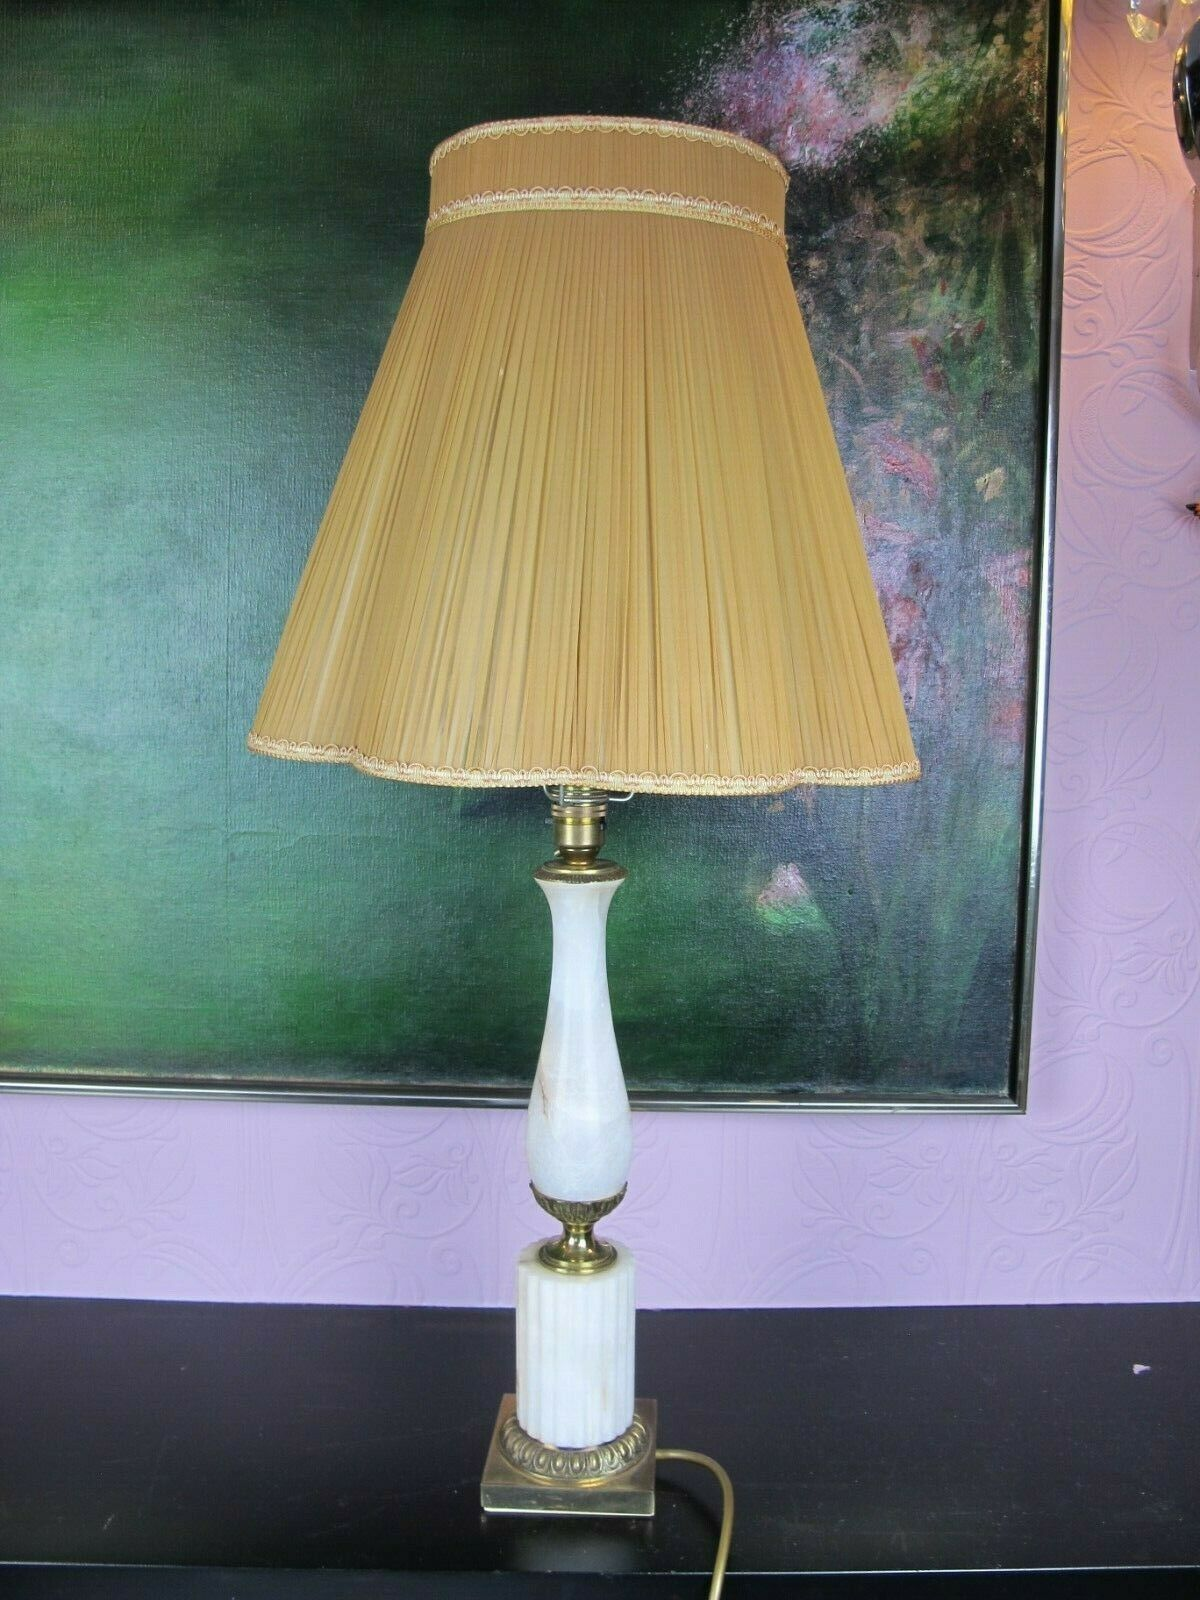 Superb quality vintage Weiß marble alabaster & brass TABLE LAMP   LIGHT & shade